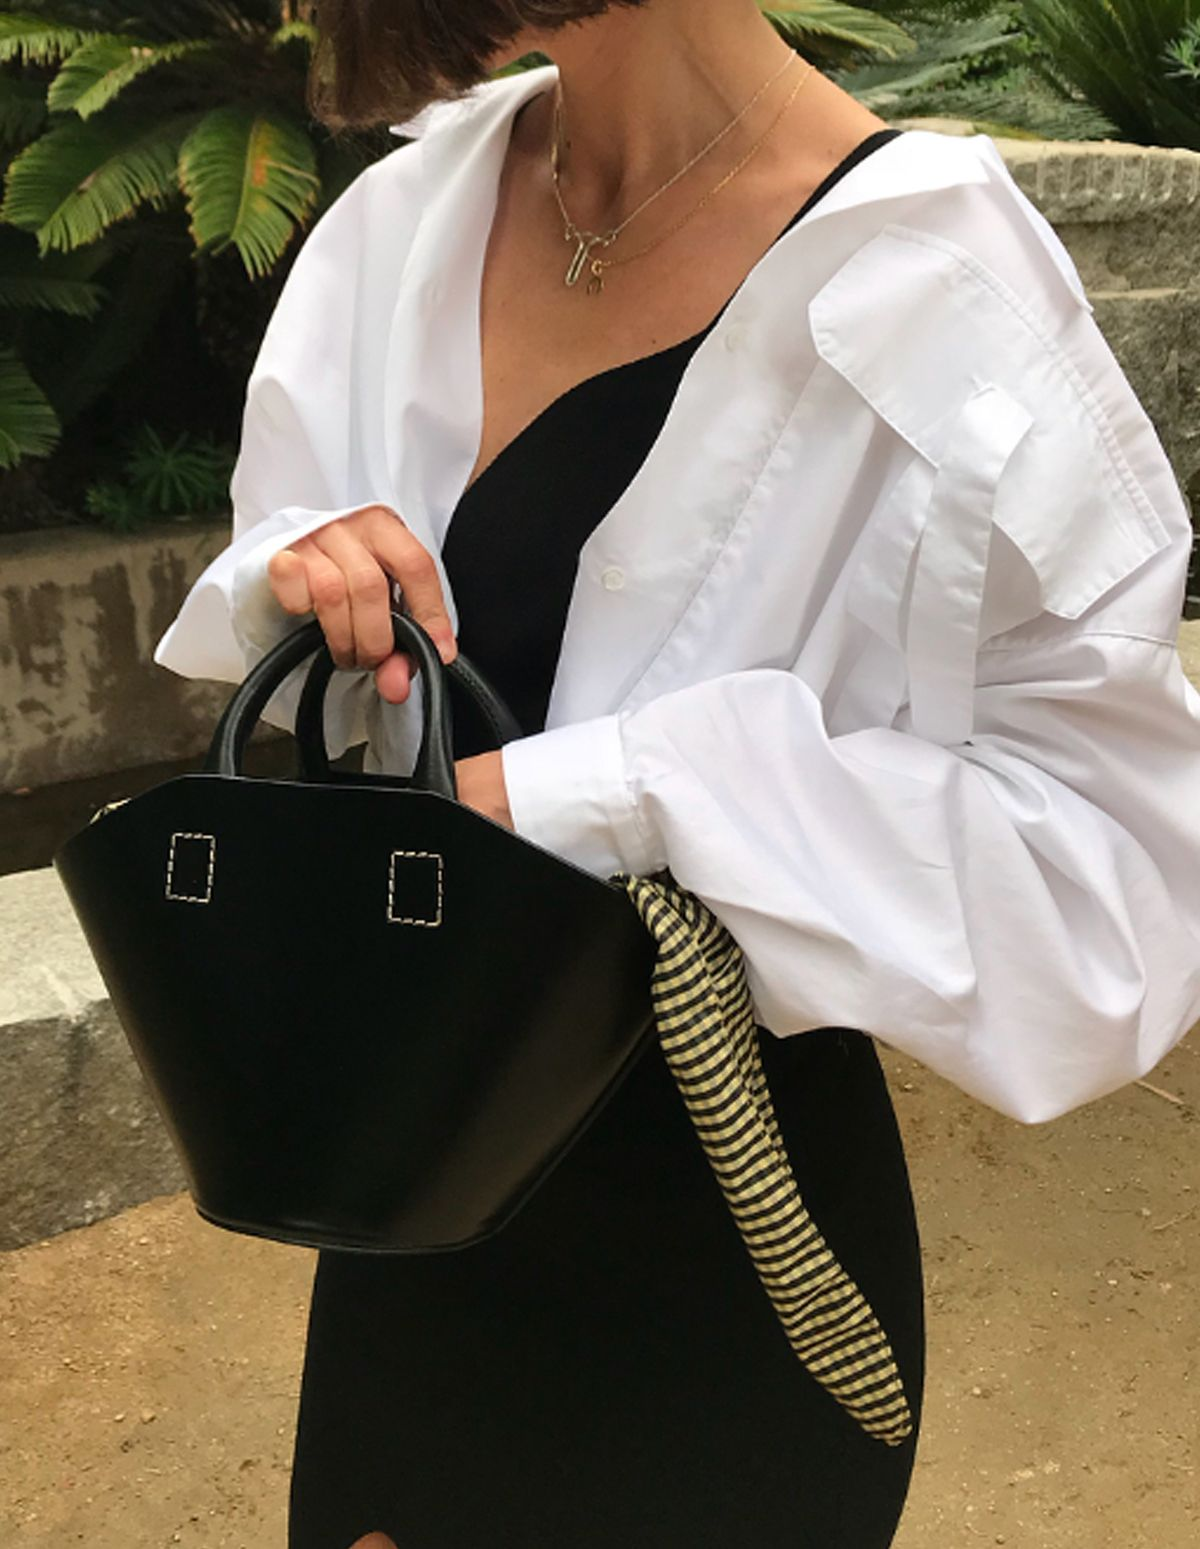 Word On the Street: This Is the Next Cult Bag Brand for 2019